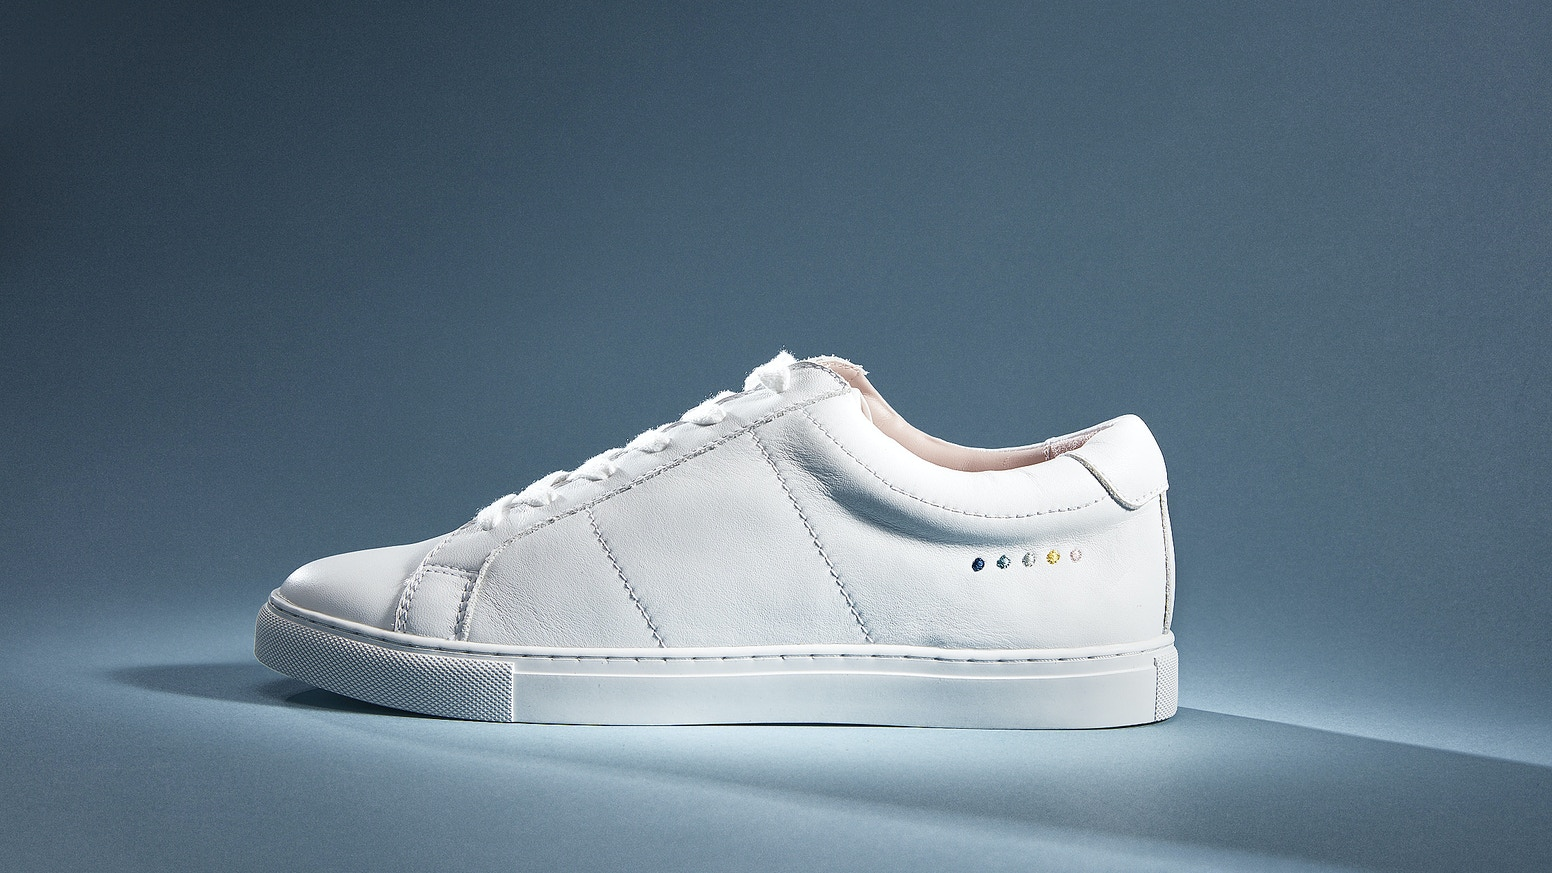 High quality leather sneakers for the modern minimalist. Made with Nappa leather for ultimate comfort, without the luxury mark-up